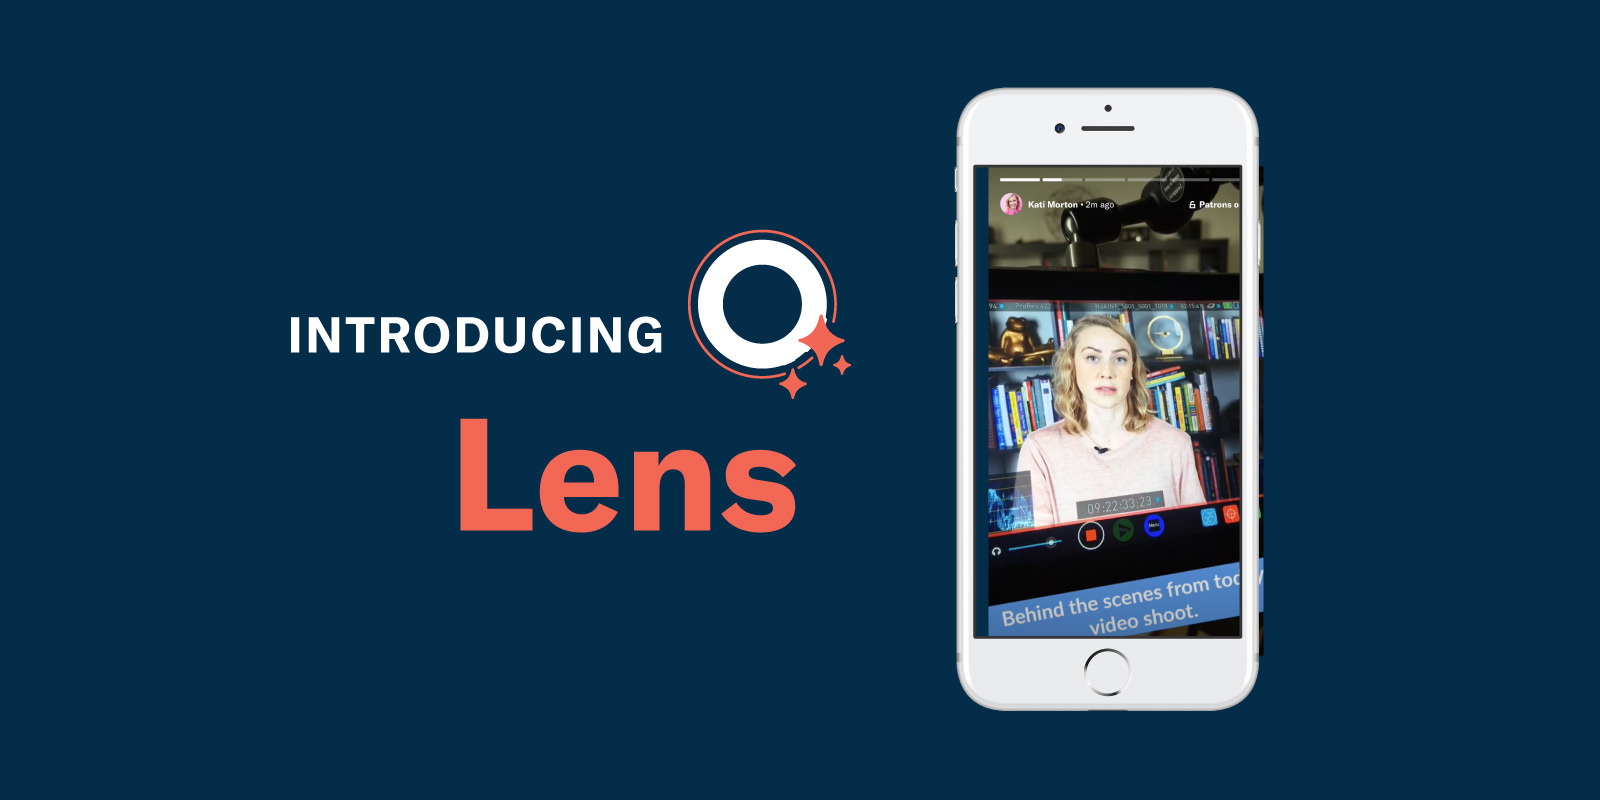 Introducing, Lens: A New Way to Bring Patrons Behind The Scenes